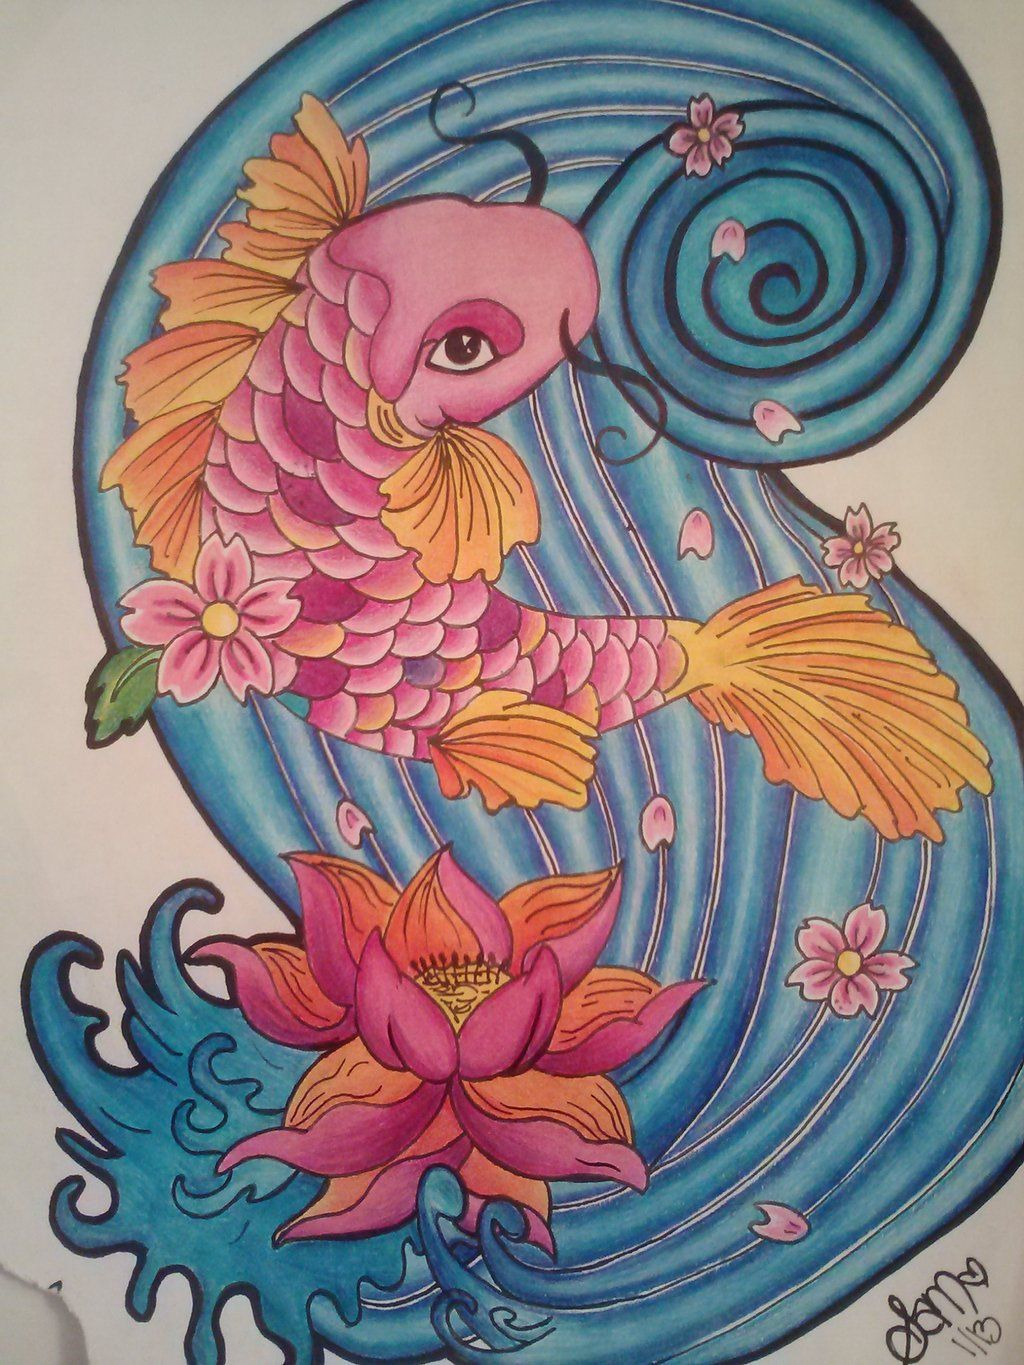 Koi Fish And Lotus Flower By Samanthalyn1 Tattoos Pinterest